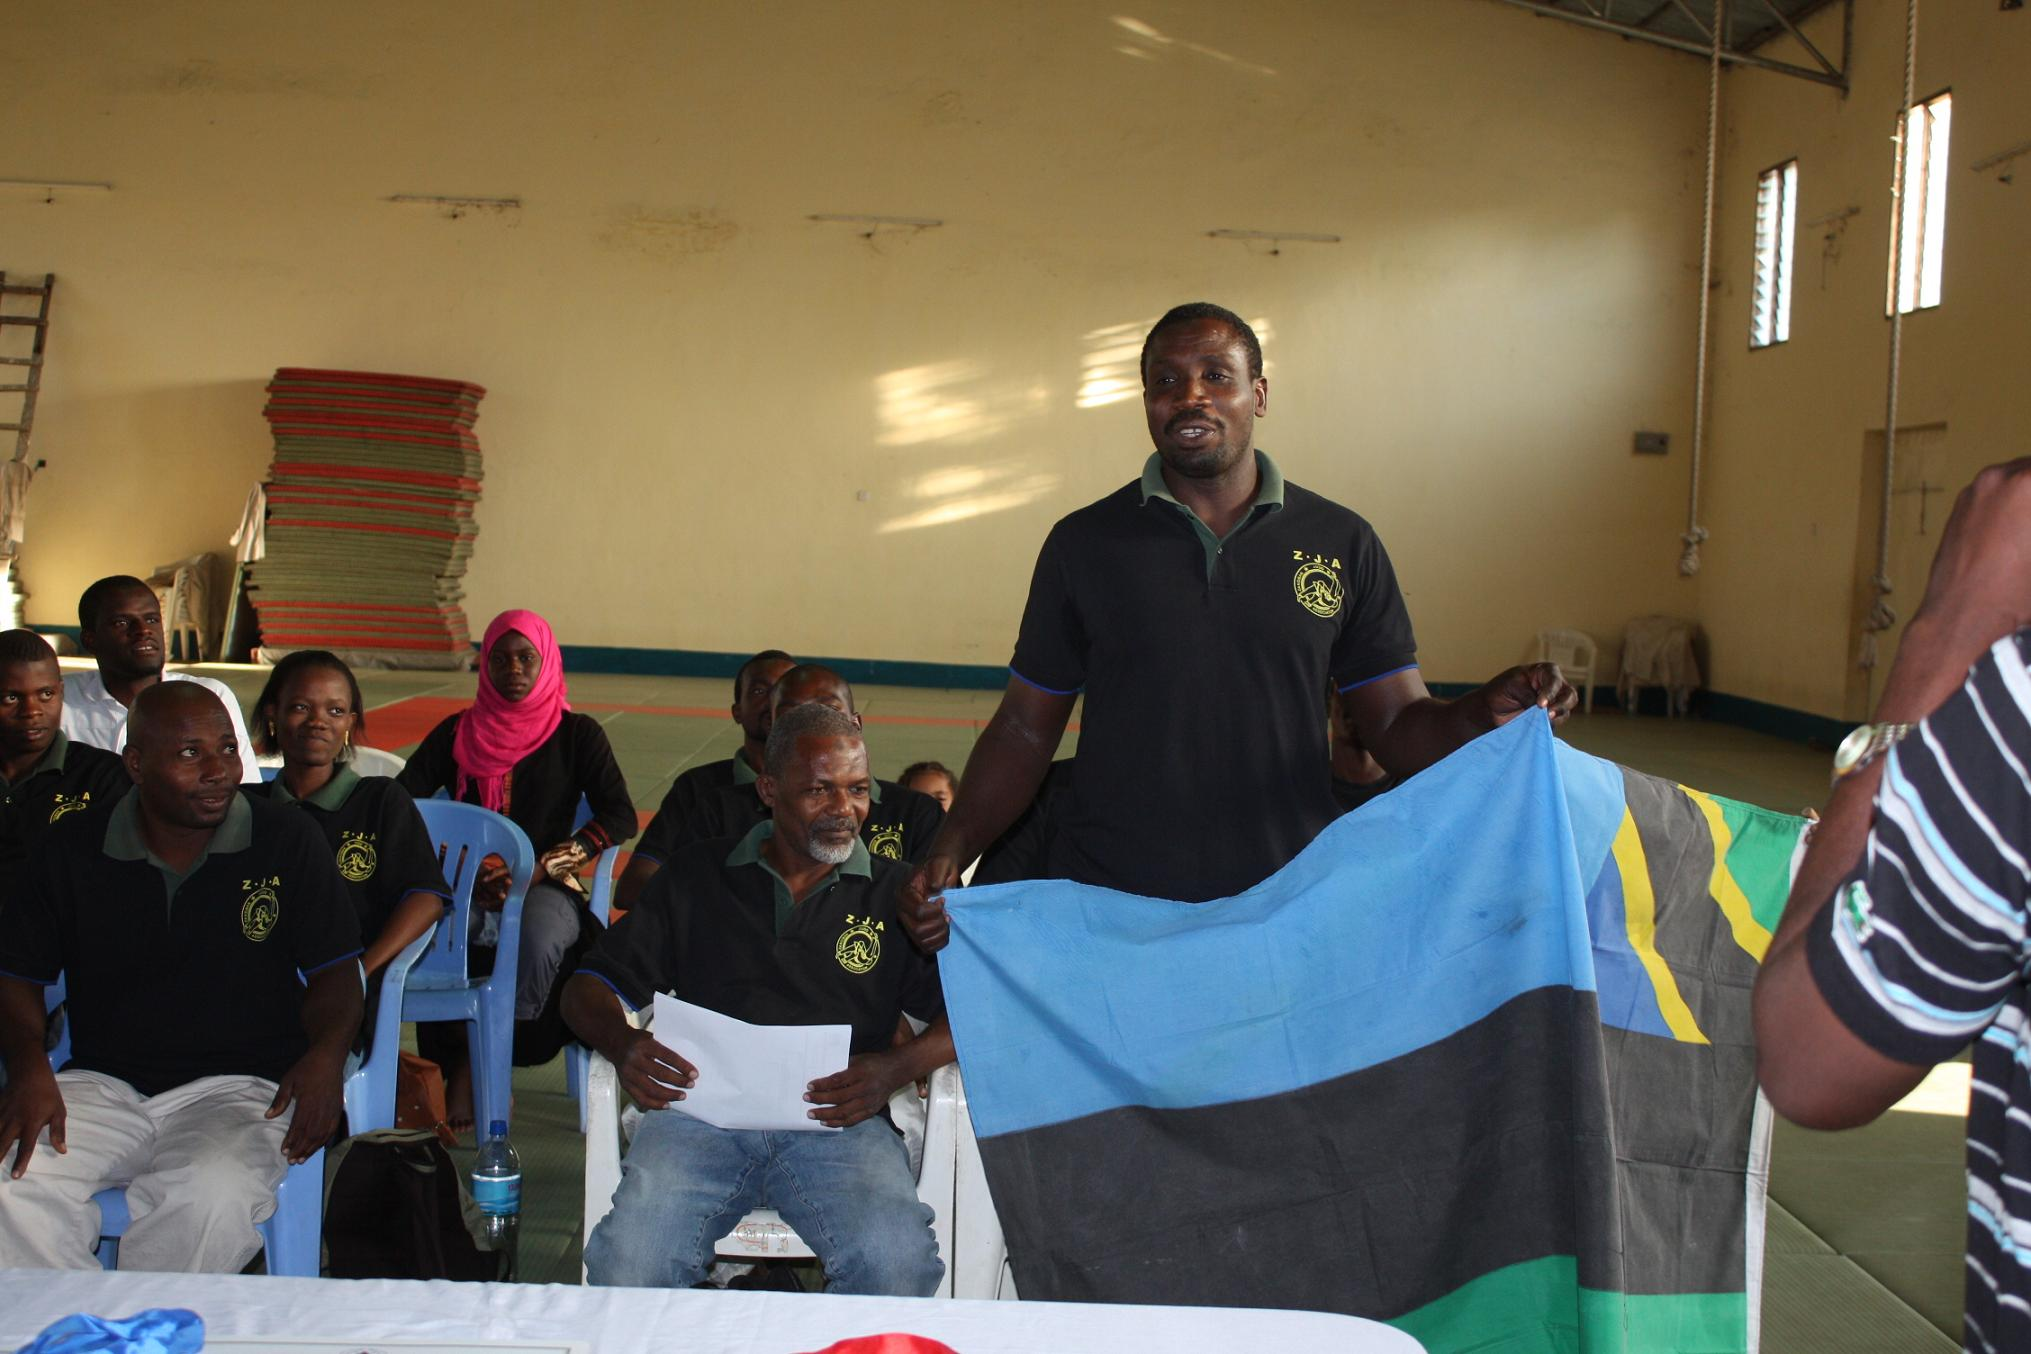 Ceremony of National Flag for The 5th East Africa Judo Championship 2011~国旗授与式_a0088841_10285716.jpg